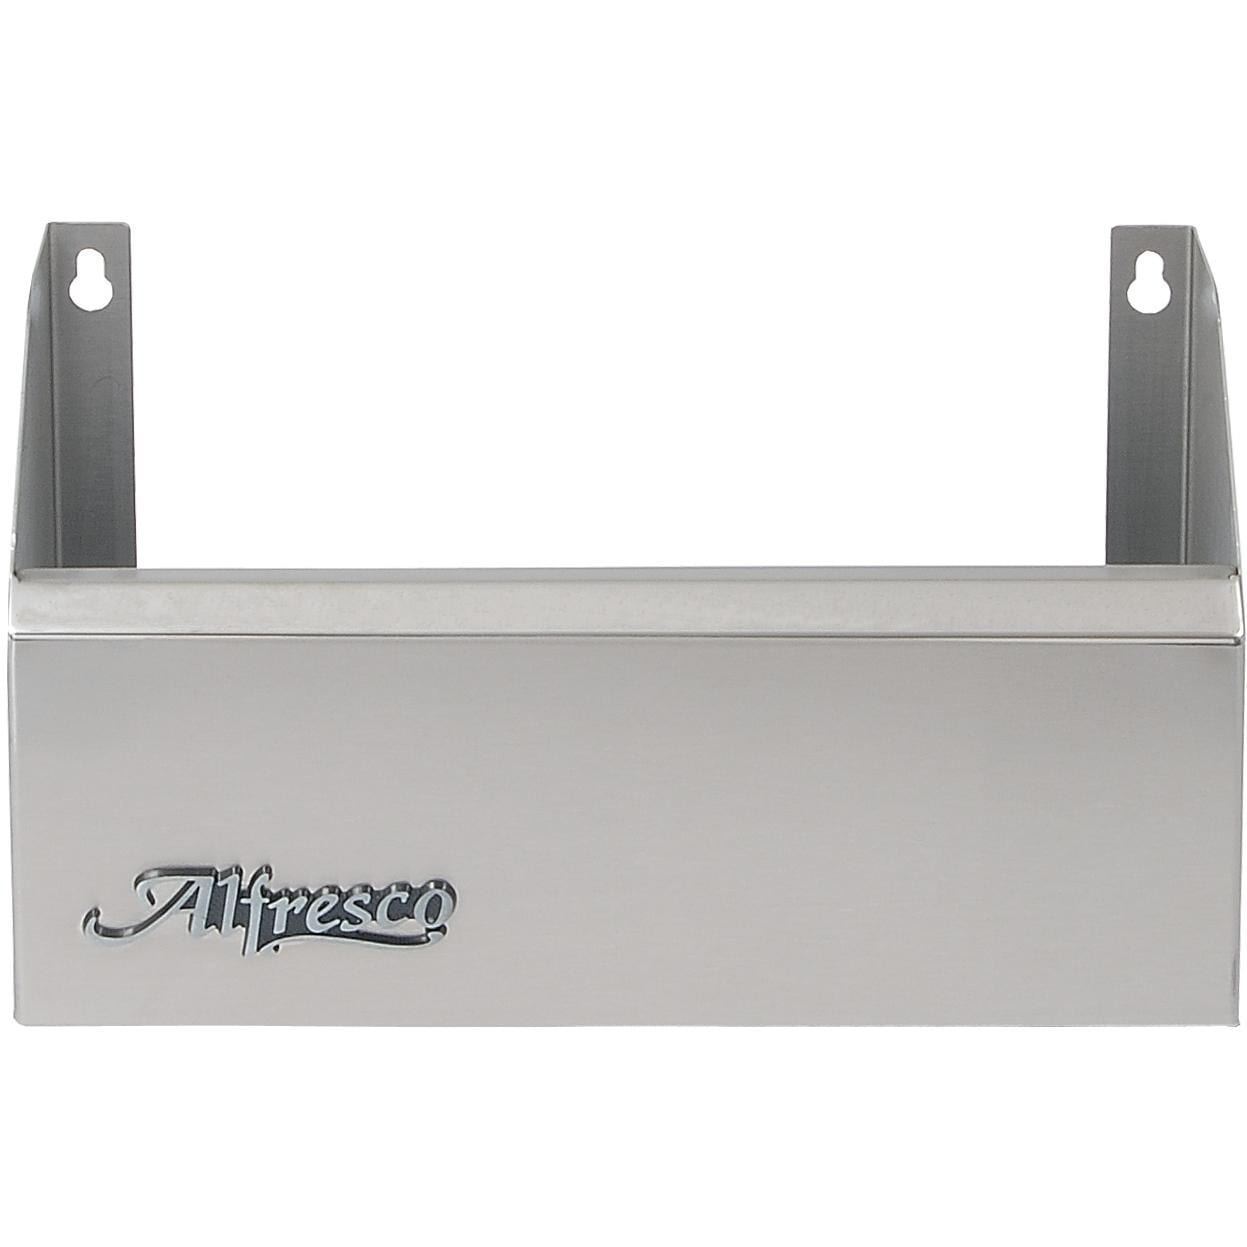 Alfresco 14-Inch Bar Speed Rail